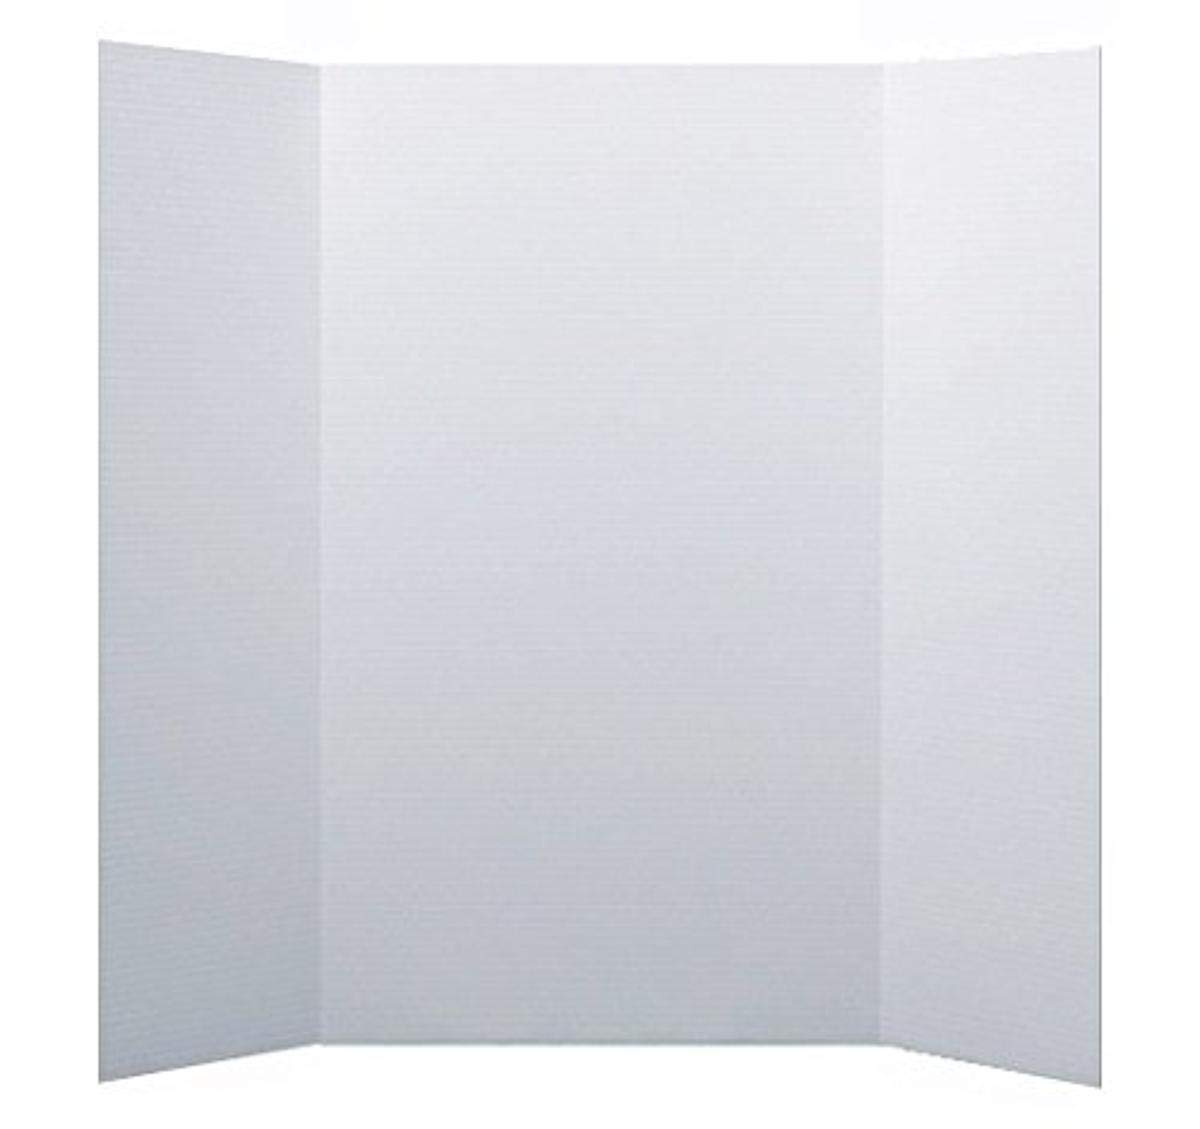 Flipside Products 30043 Project Display Board, White (Pack of 18)